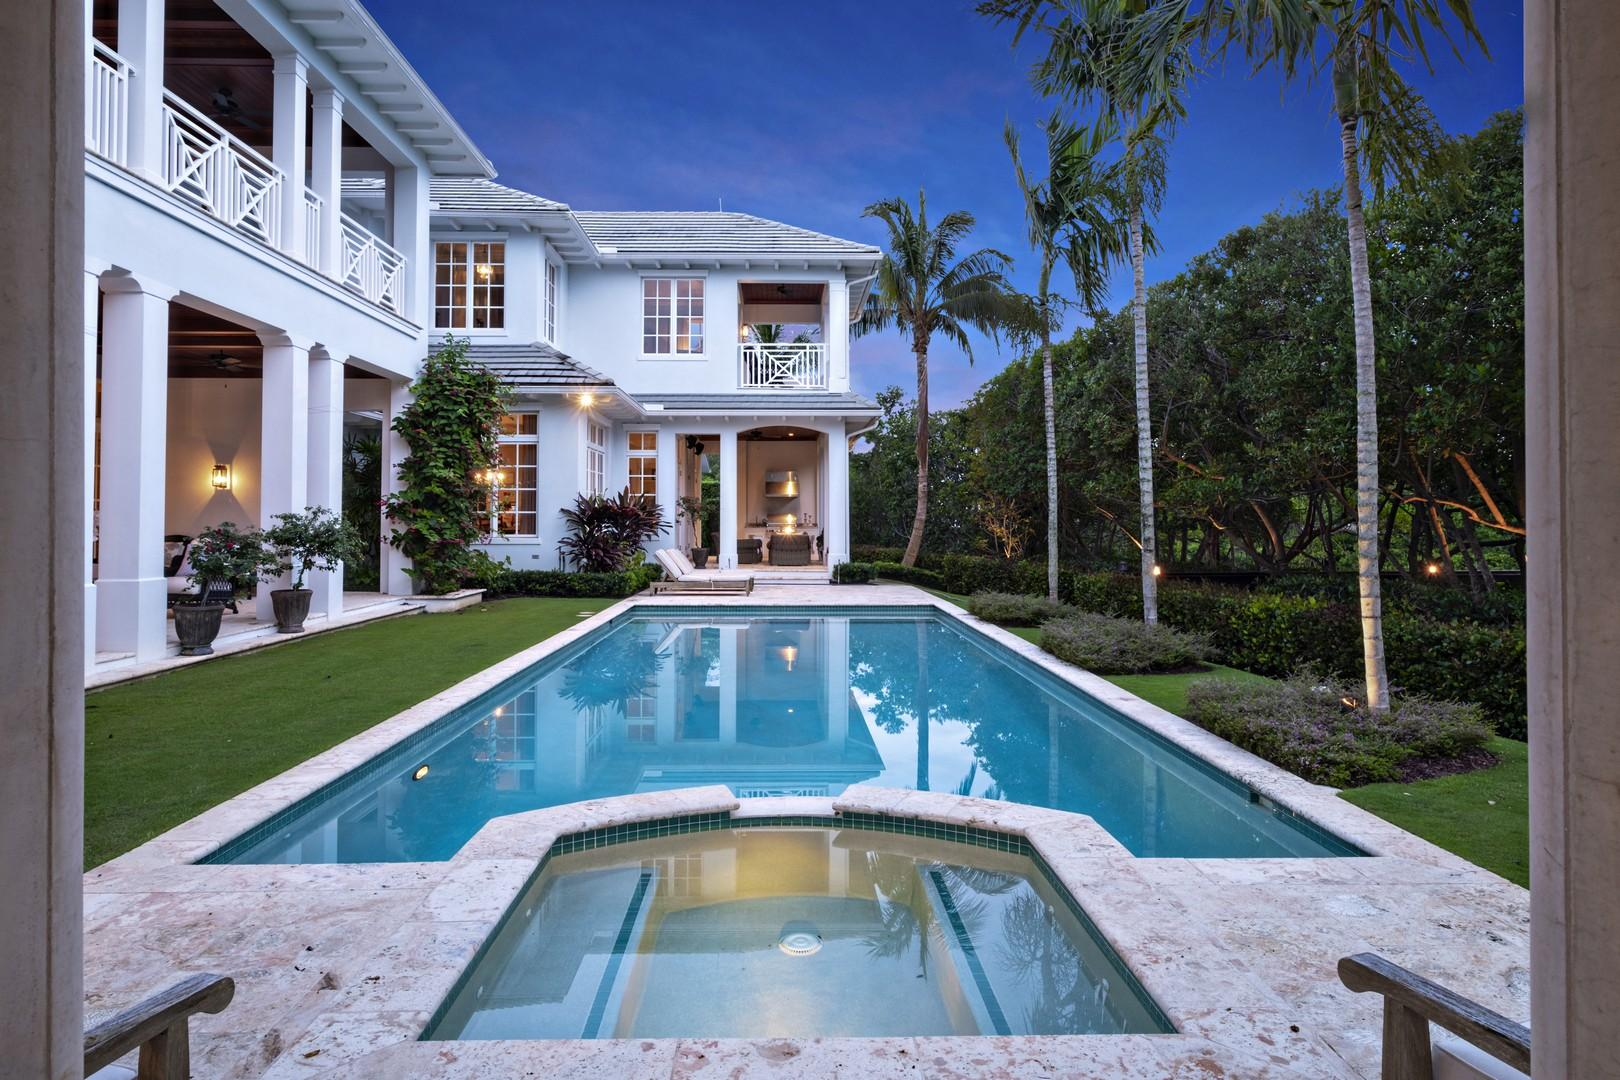 NORTH PALM BEACH PROPERTY